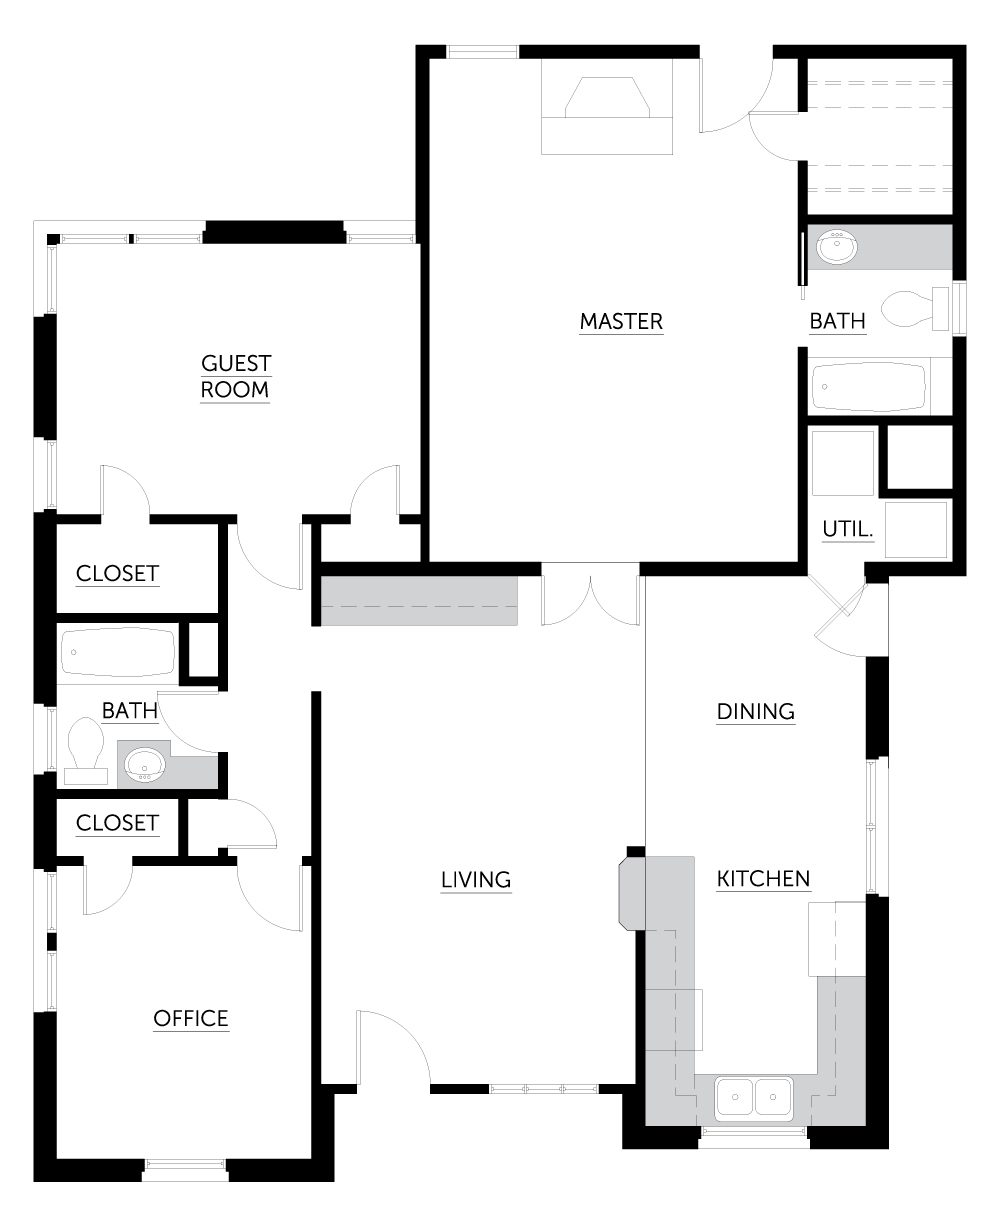 COUCH-Before-Plan Floorplan